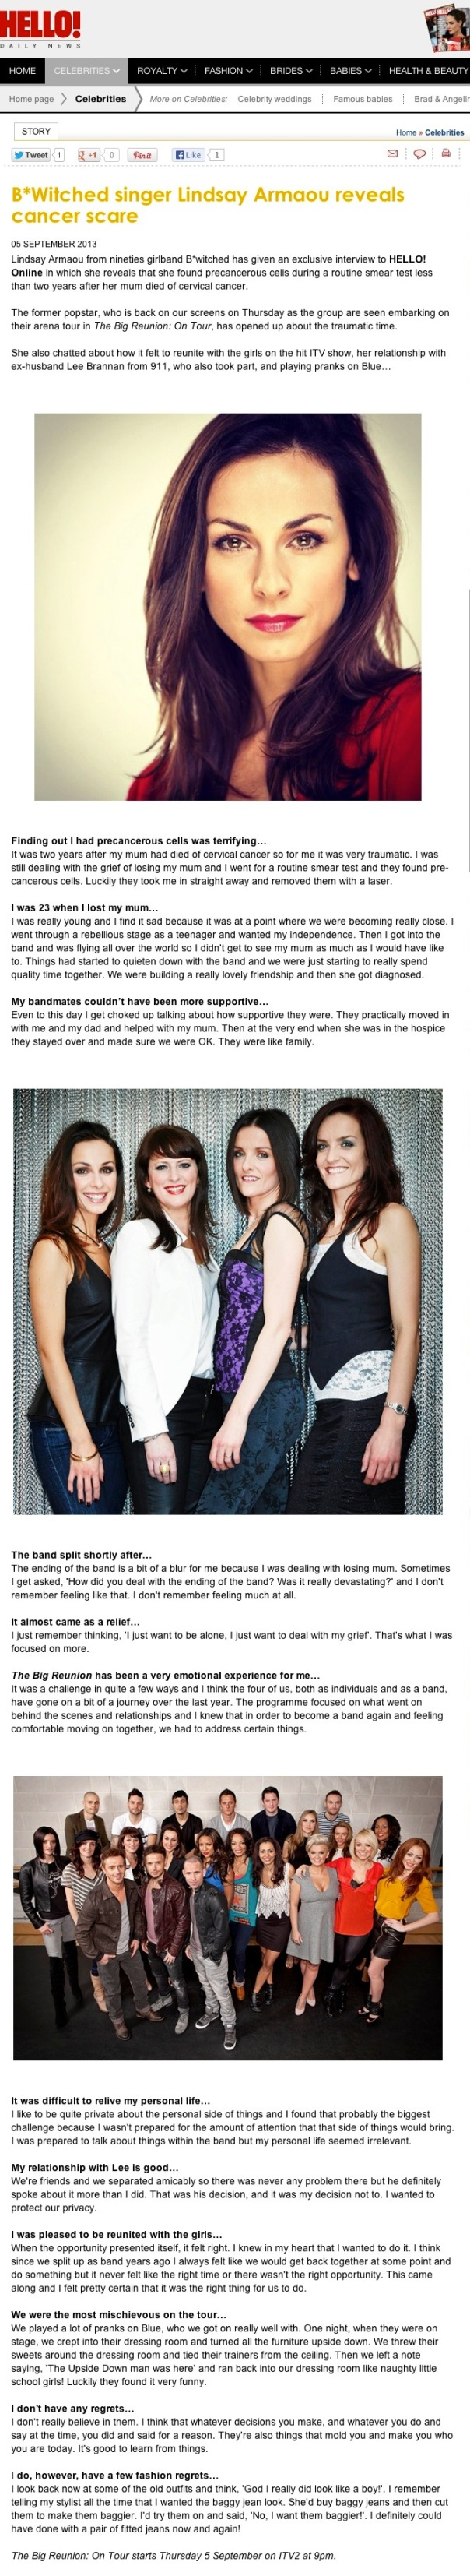 B*Witched singer Lindsay Armaou reveals cancer scare - hellomagazine.com